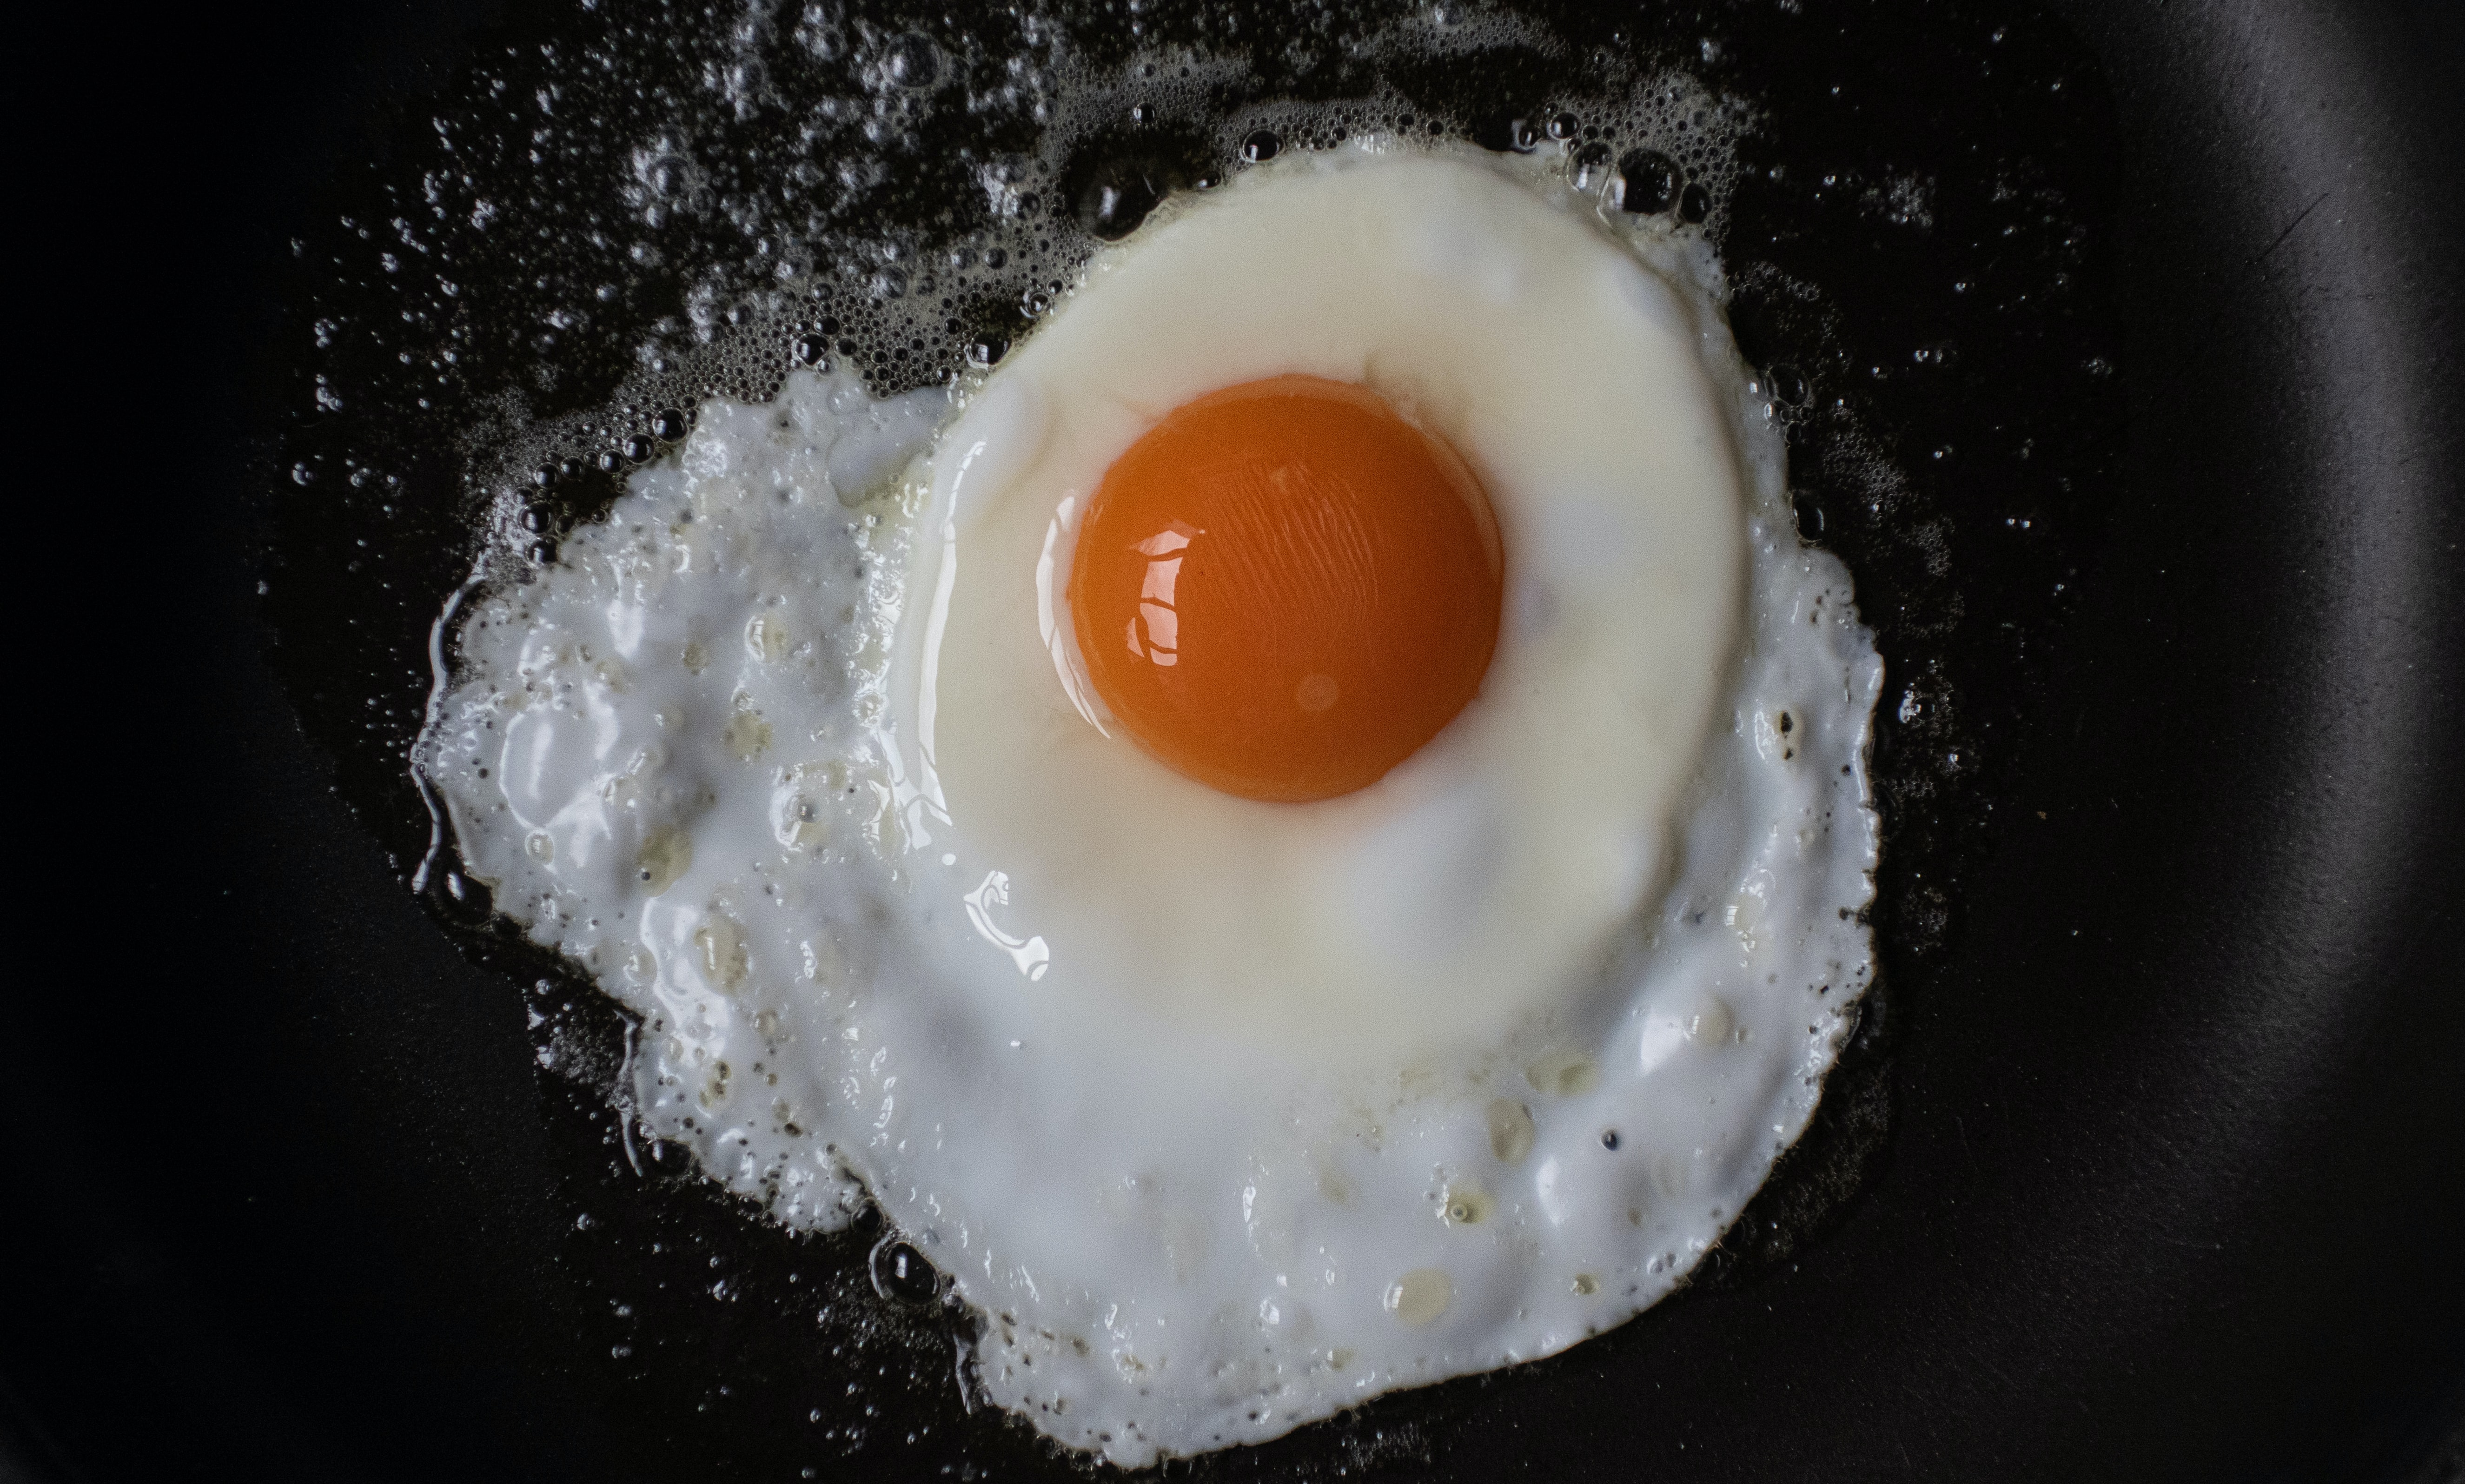 Fried egg in a pan.